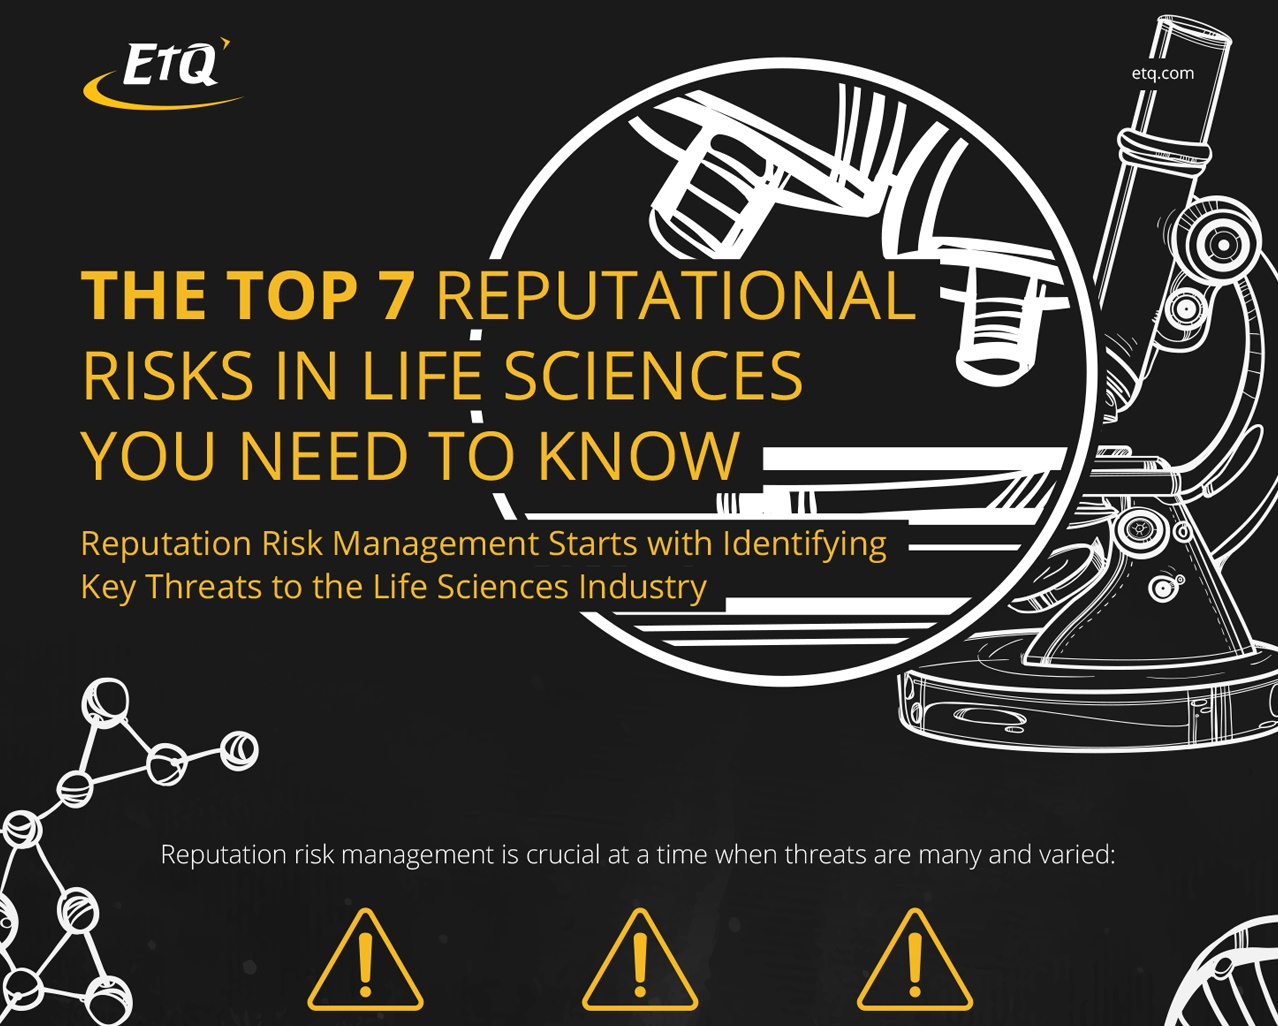 the-top-7-reputational-risk-in-life-sciences-thumbnails.jpg